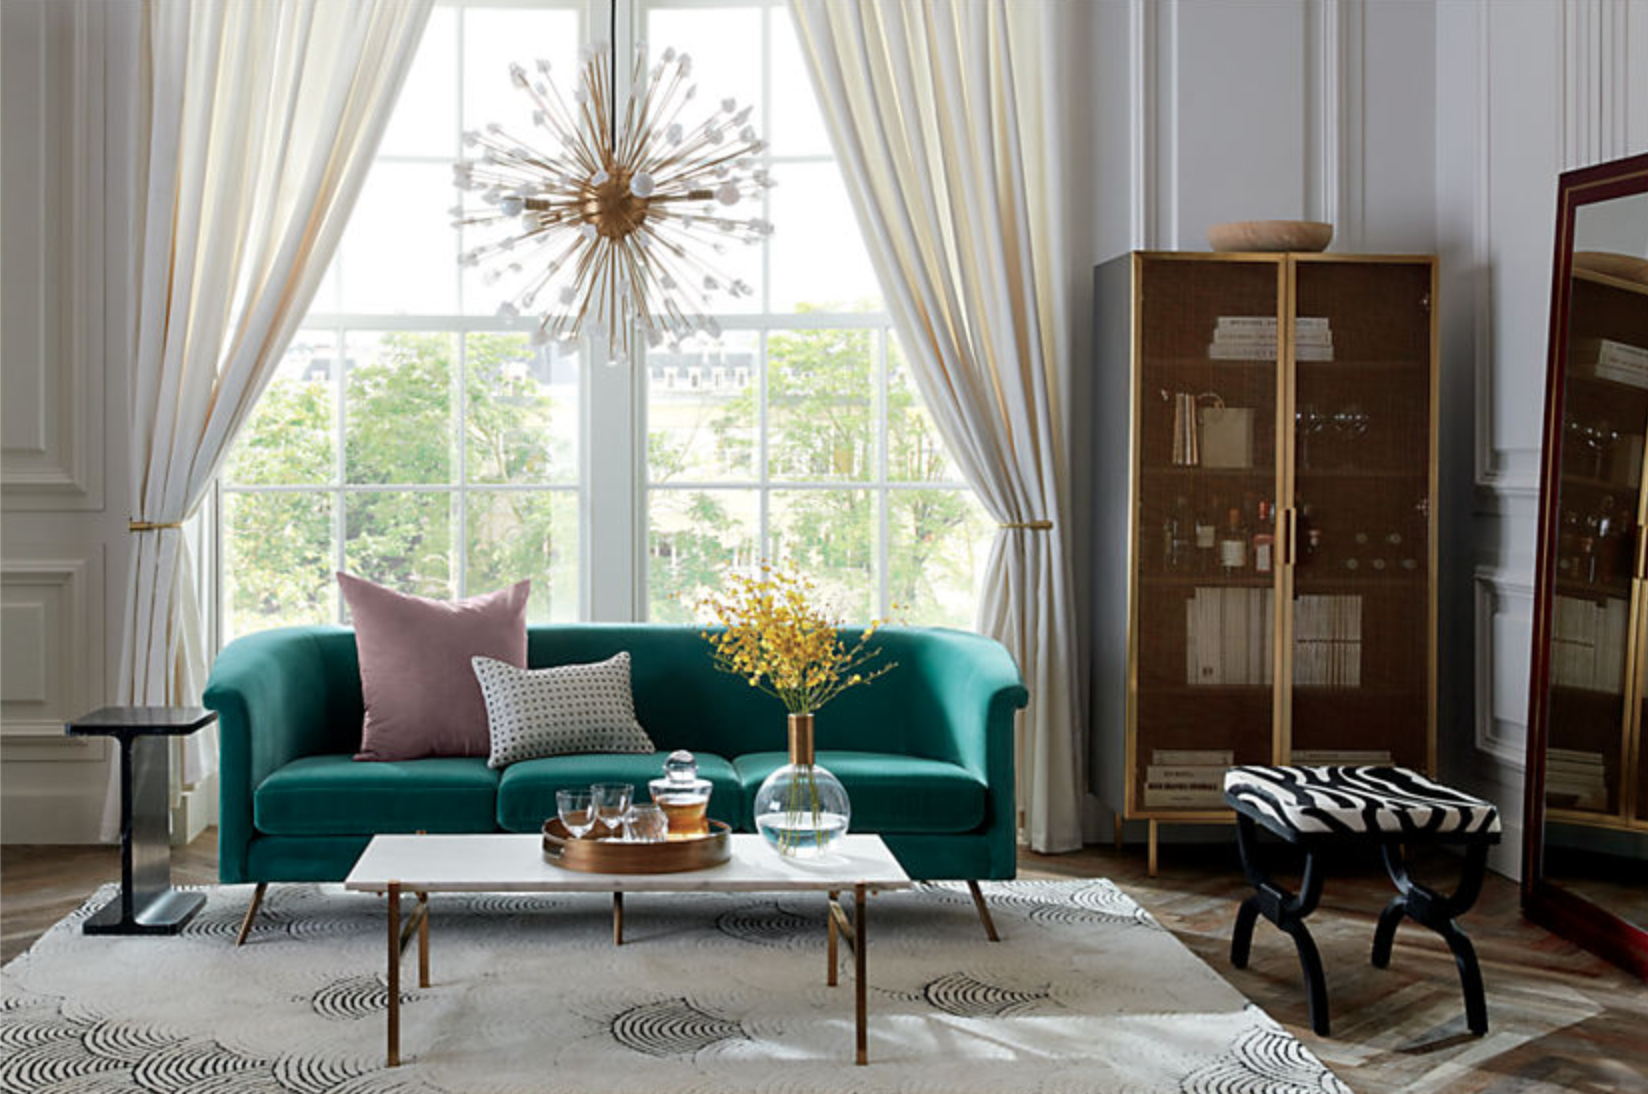 How to Add Art Deco Style to Your Home